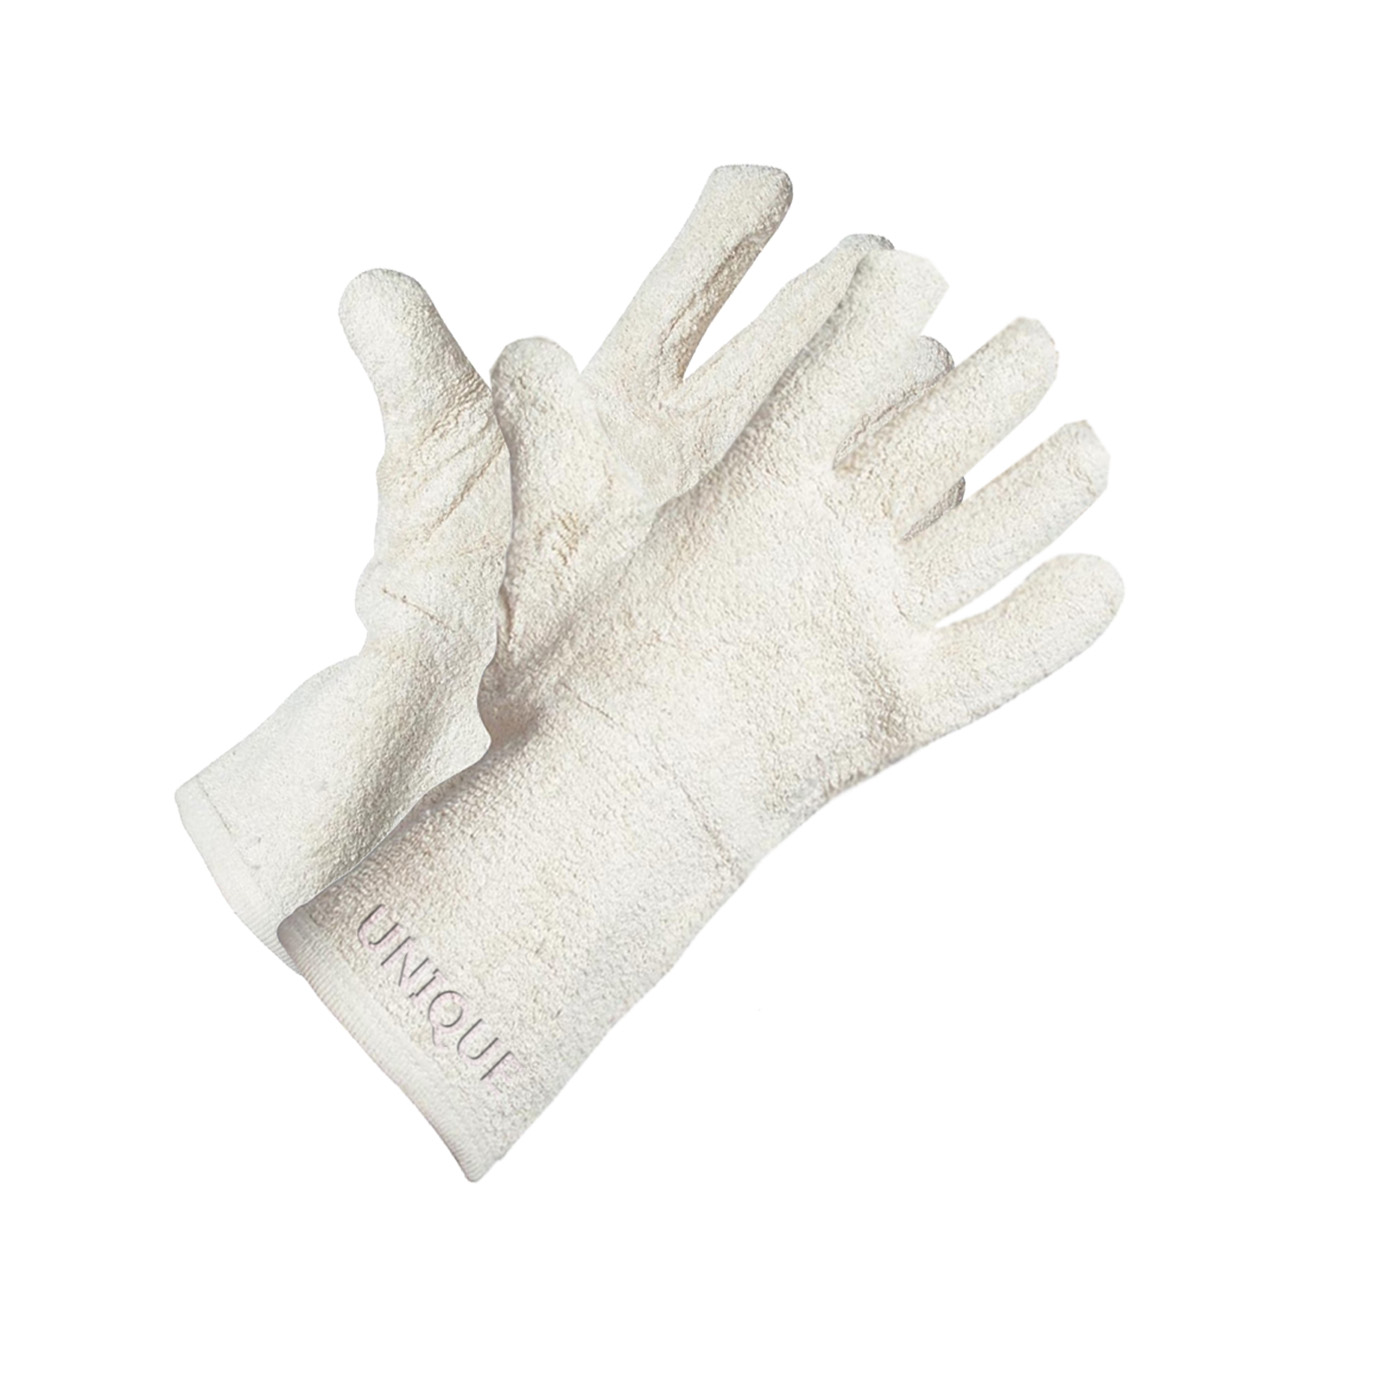 Terry Cloth Cotton Gloves